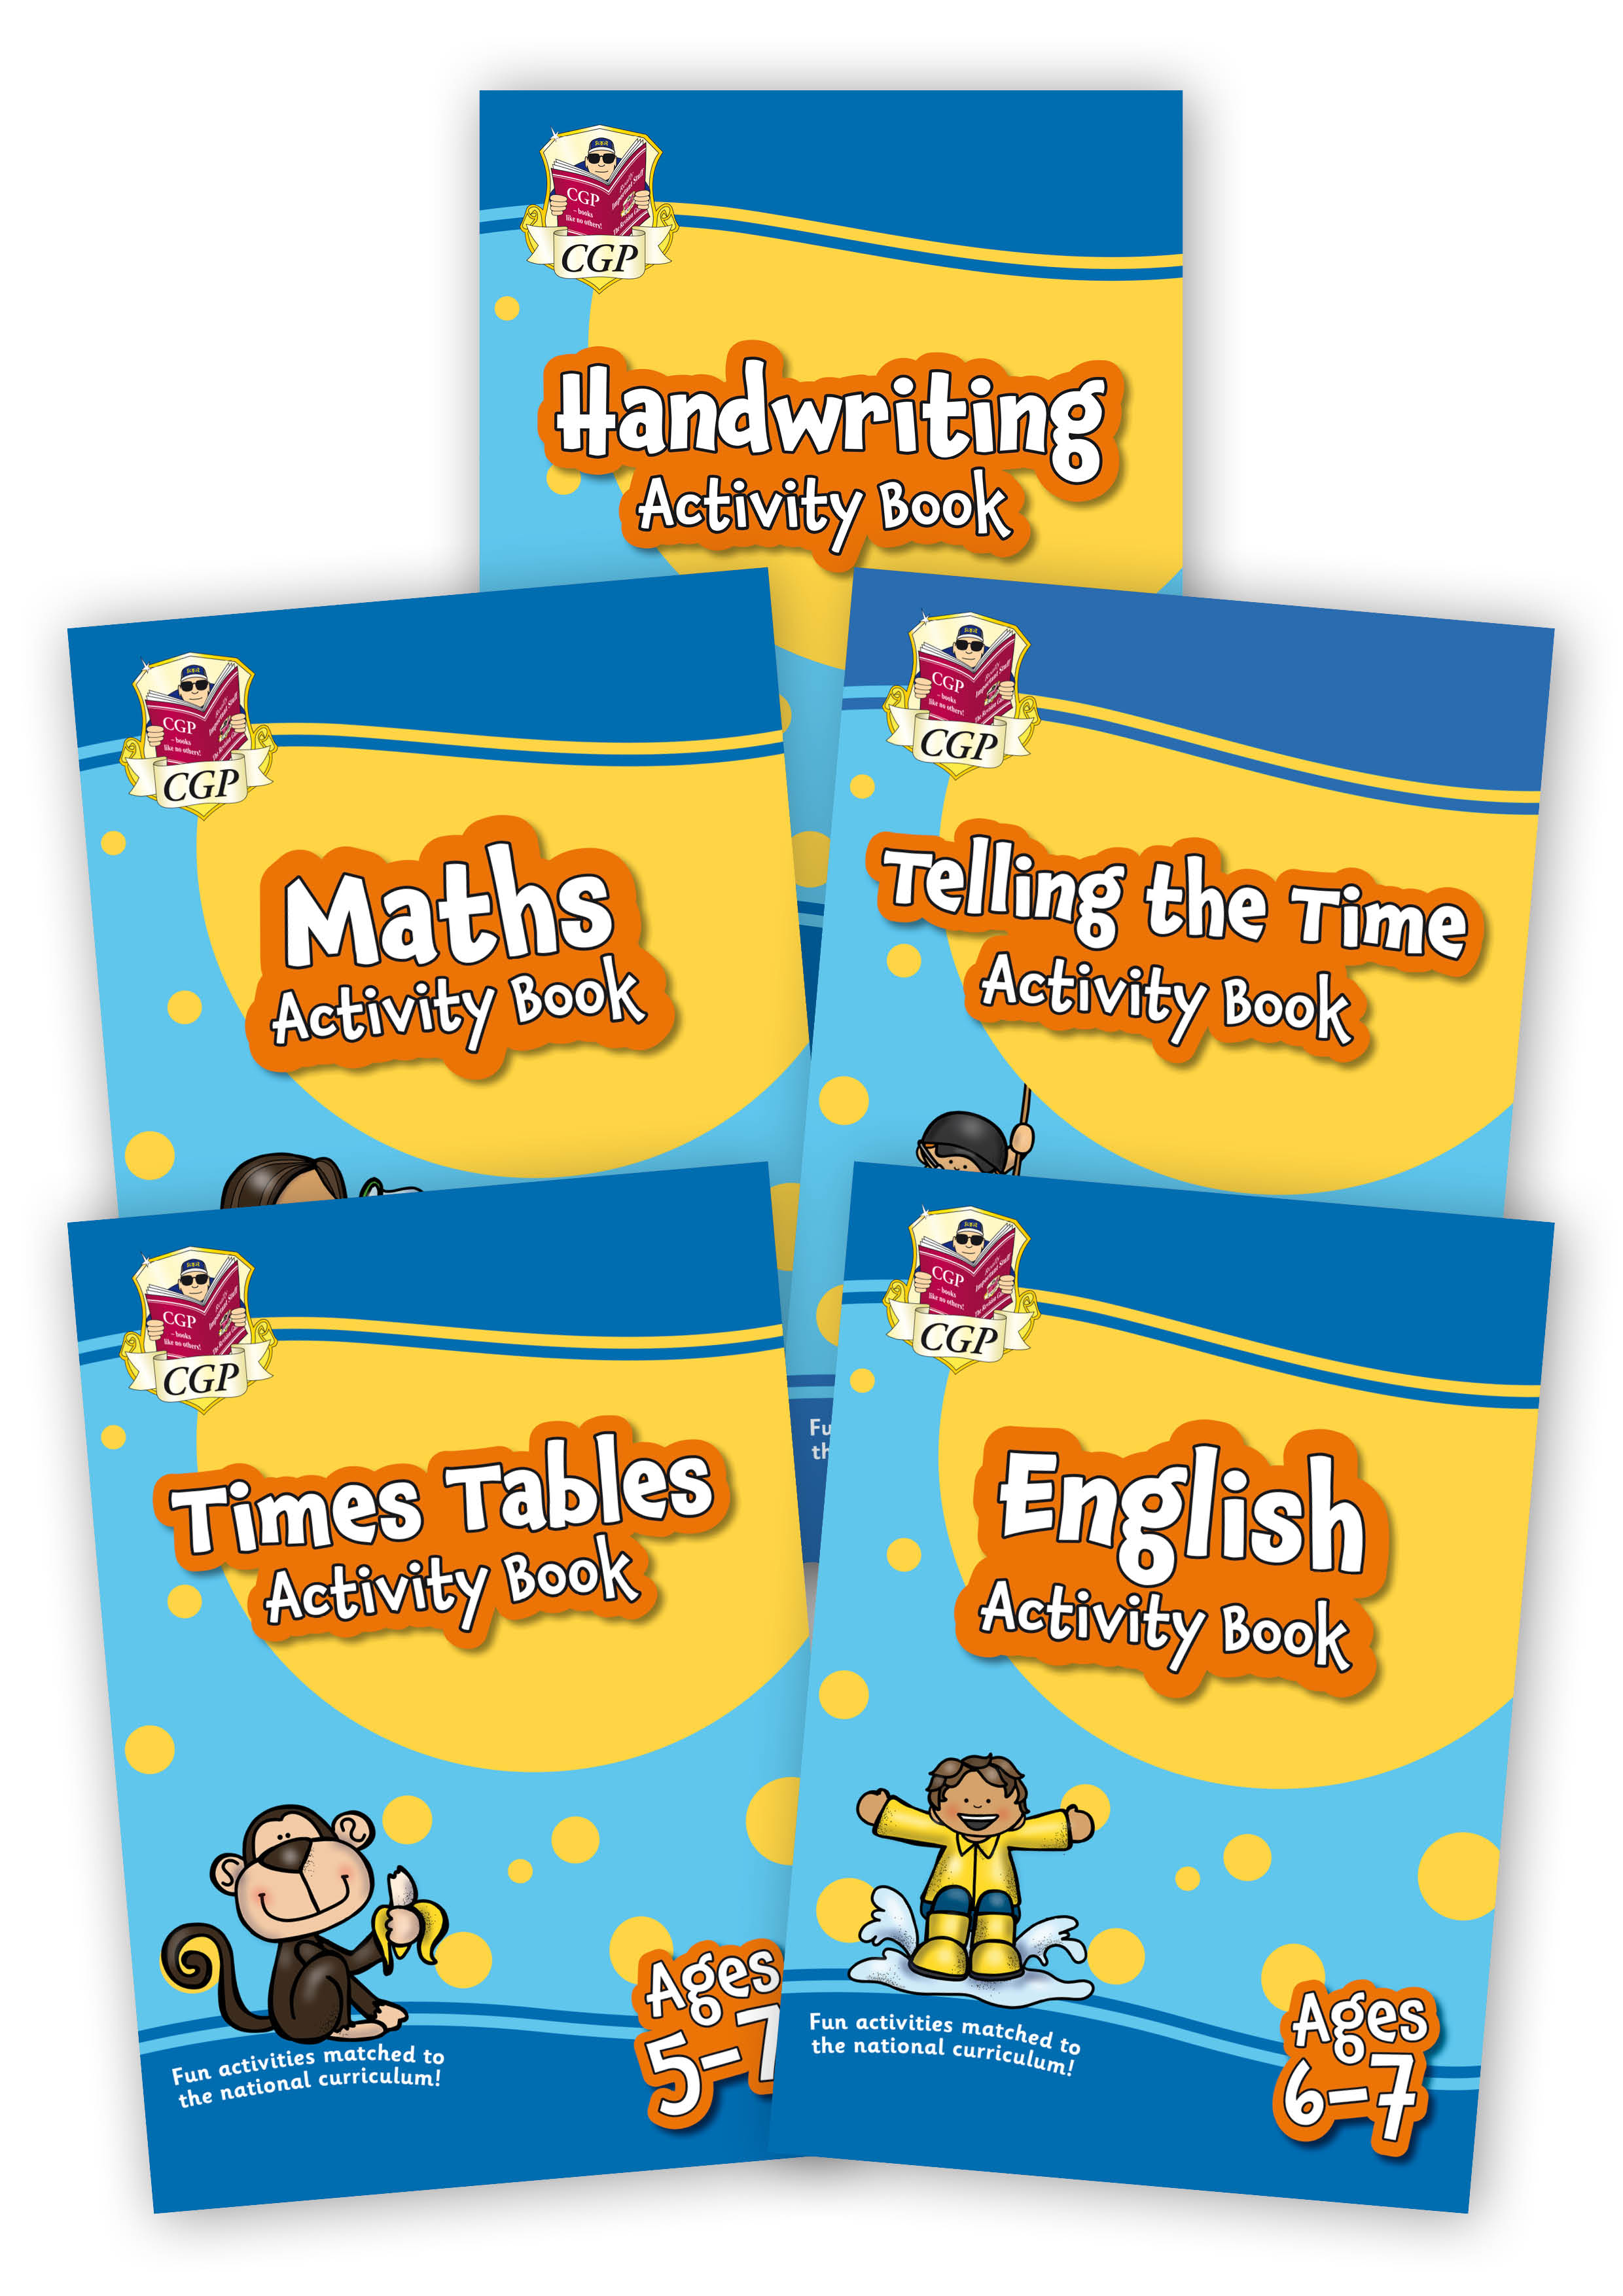 EMPF2B11 - New Home Learning Activity Books - 5-book bundle: KS1 Ages 6-7